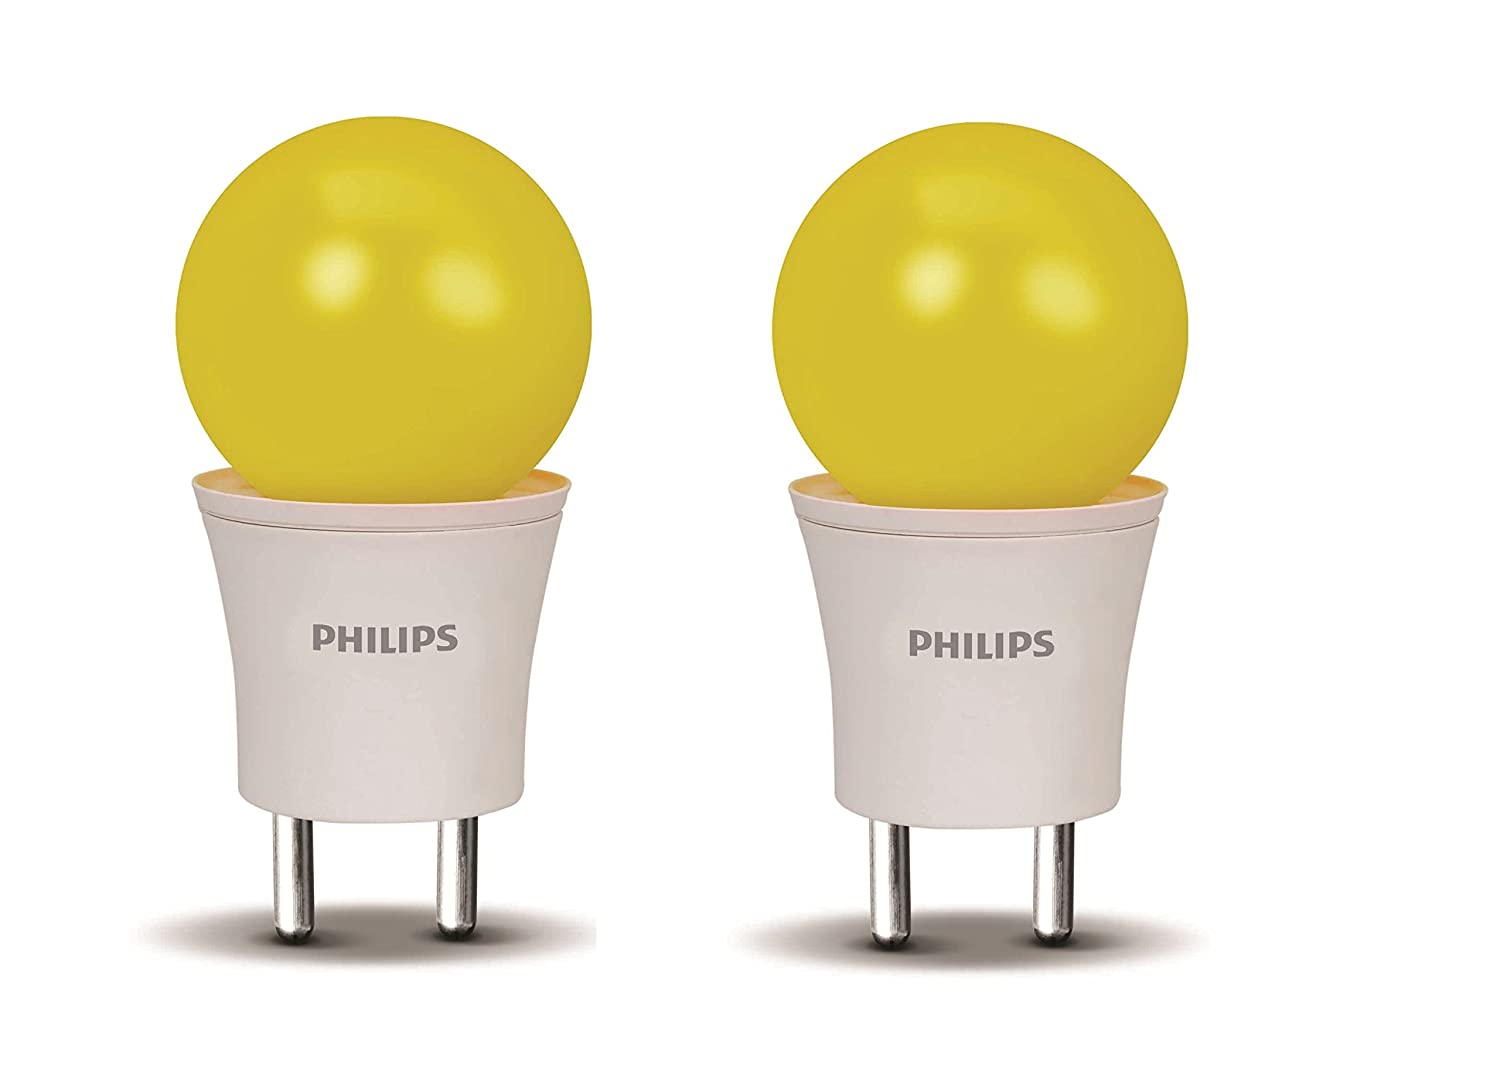 Wall night lamp online india - Philips Joy Vision Pearl Candy 0 5 Watt Led Bulb Red And Pack Of 2